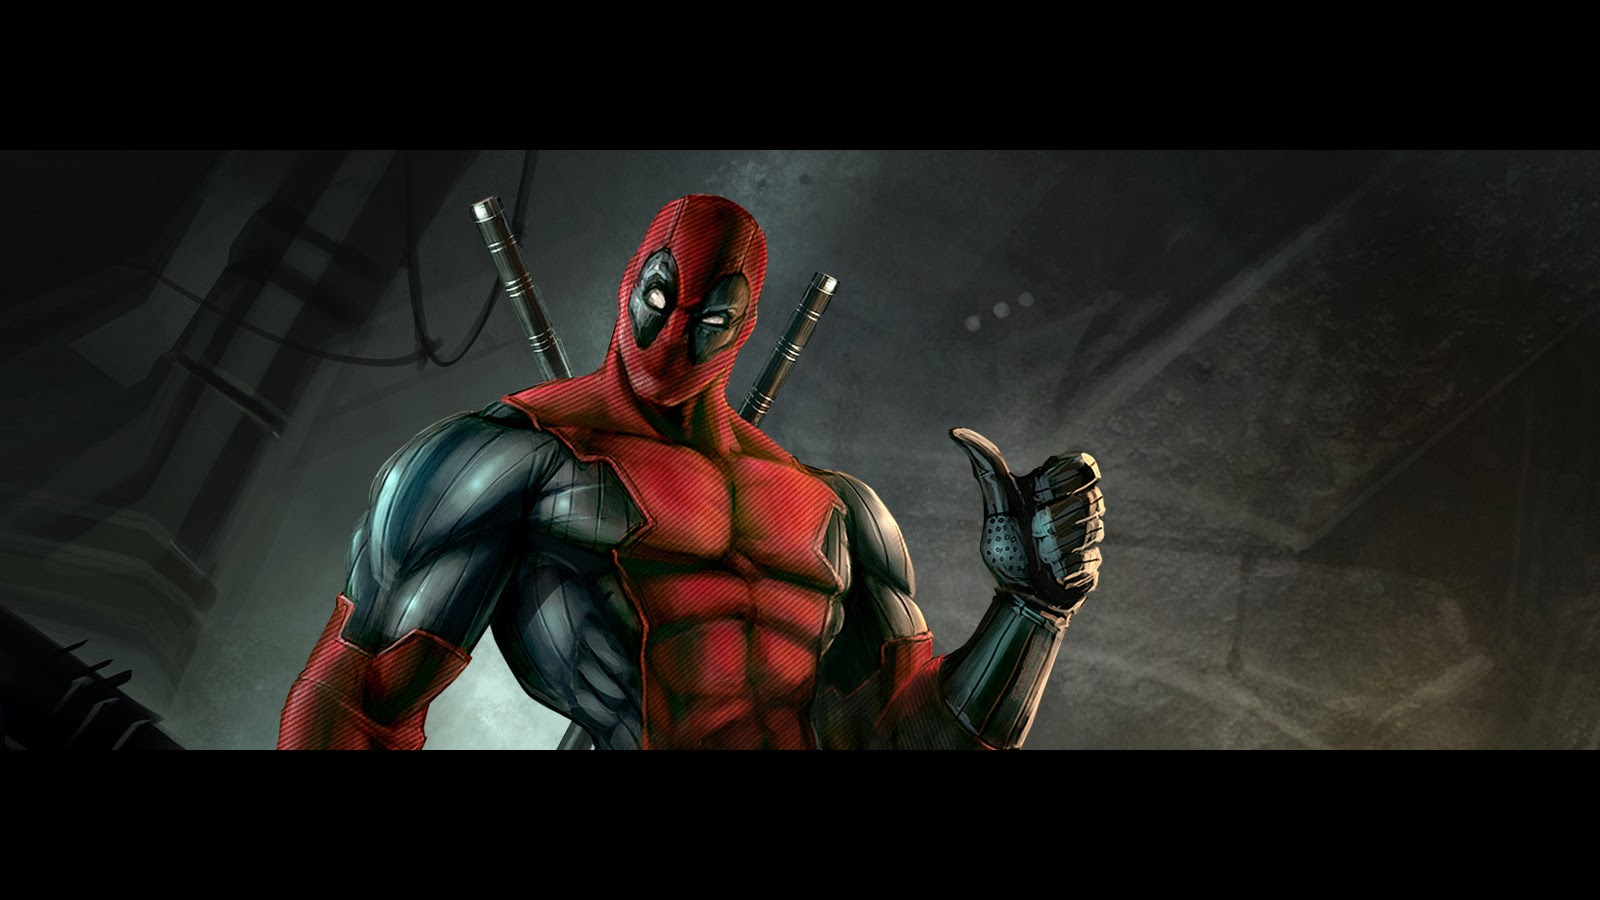 Deadpool Marvel Comics HD Wallpaper 1600x900 a82 1600x900